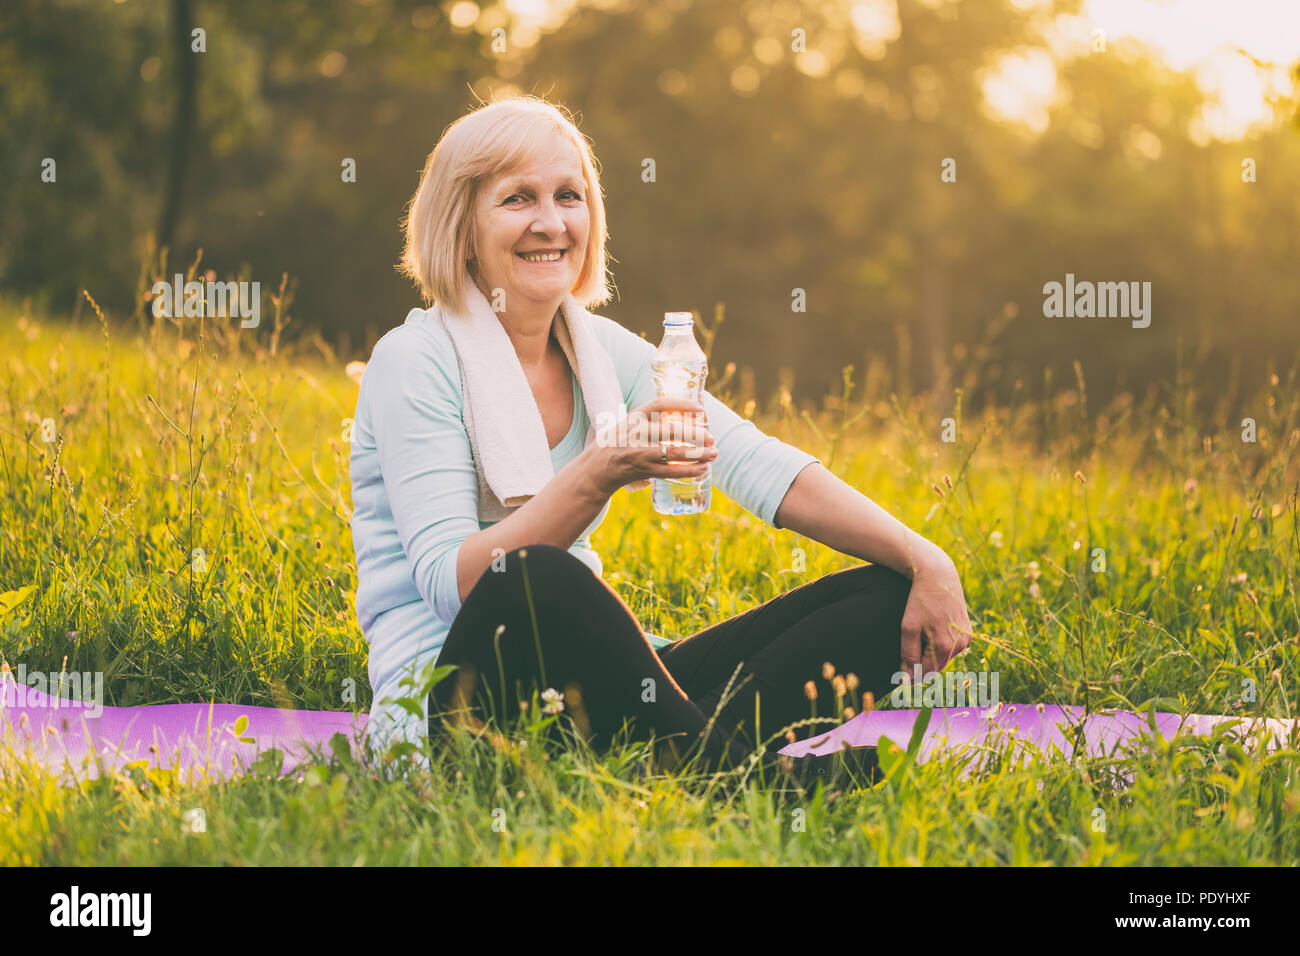 Portrait of active senior woman drinking water during exercise.Image is intentionally toned. Stock Photo